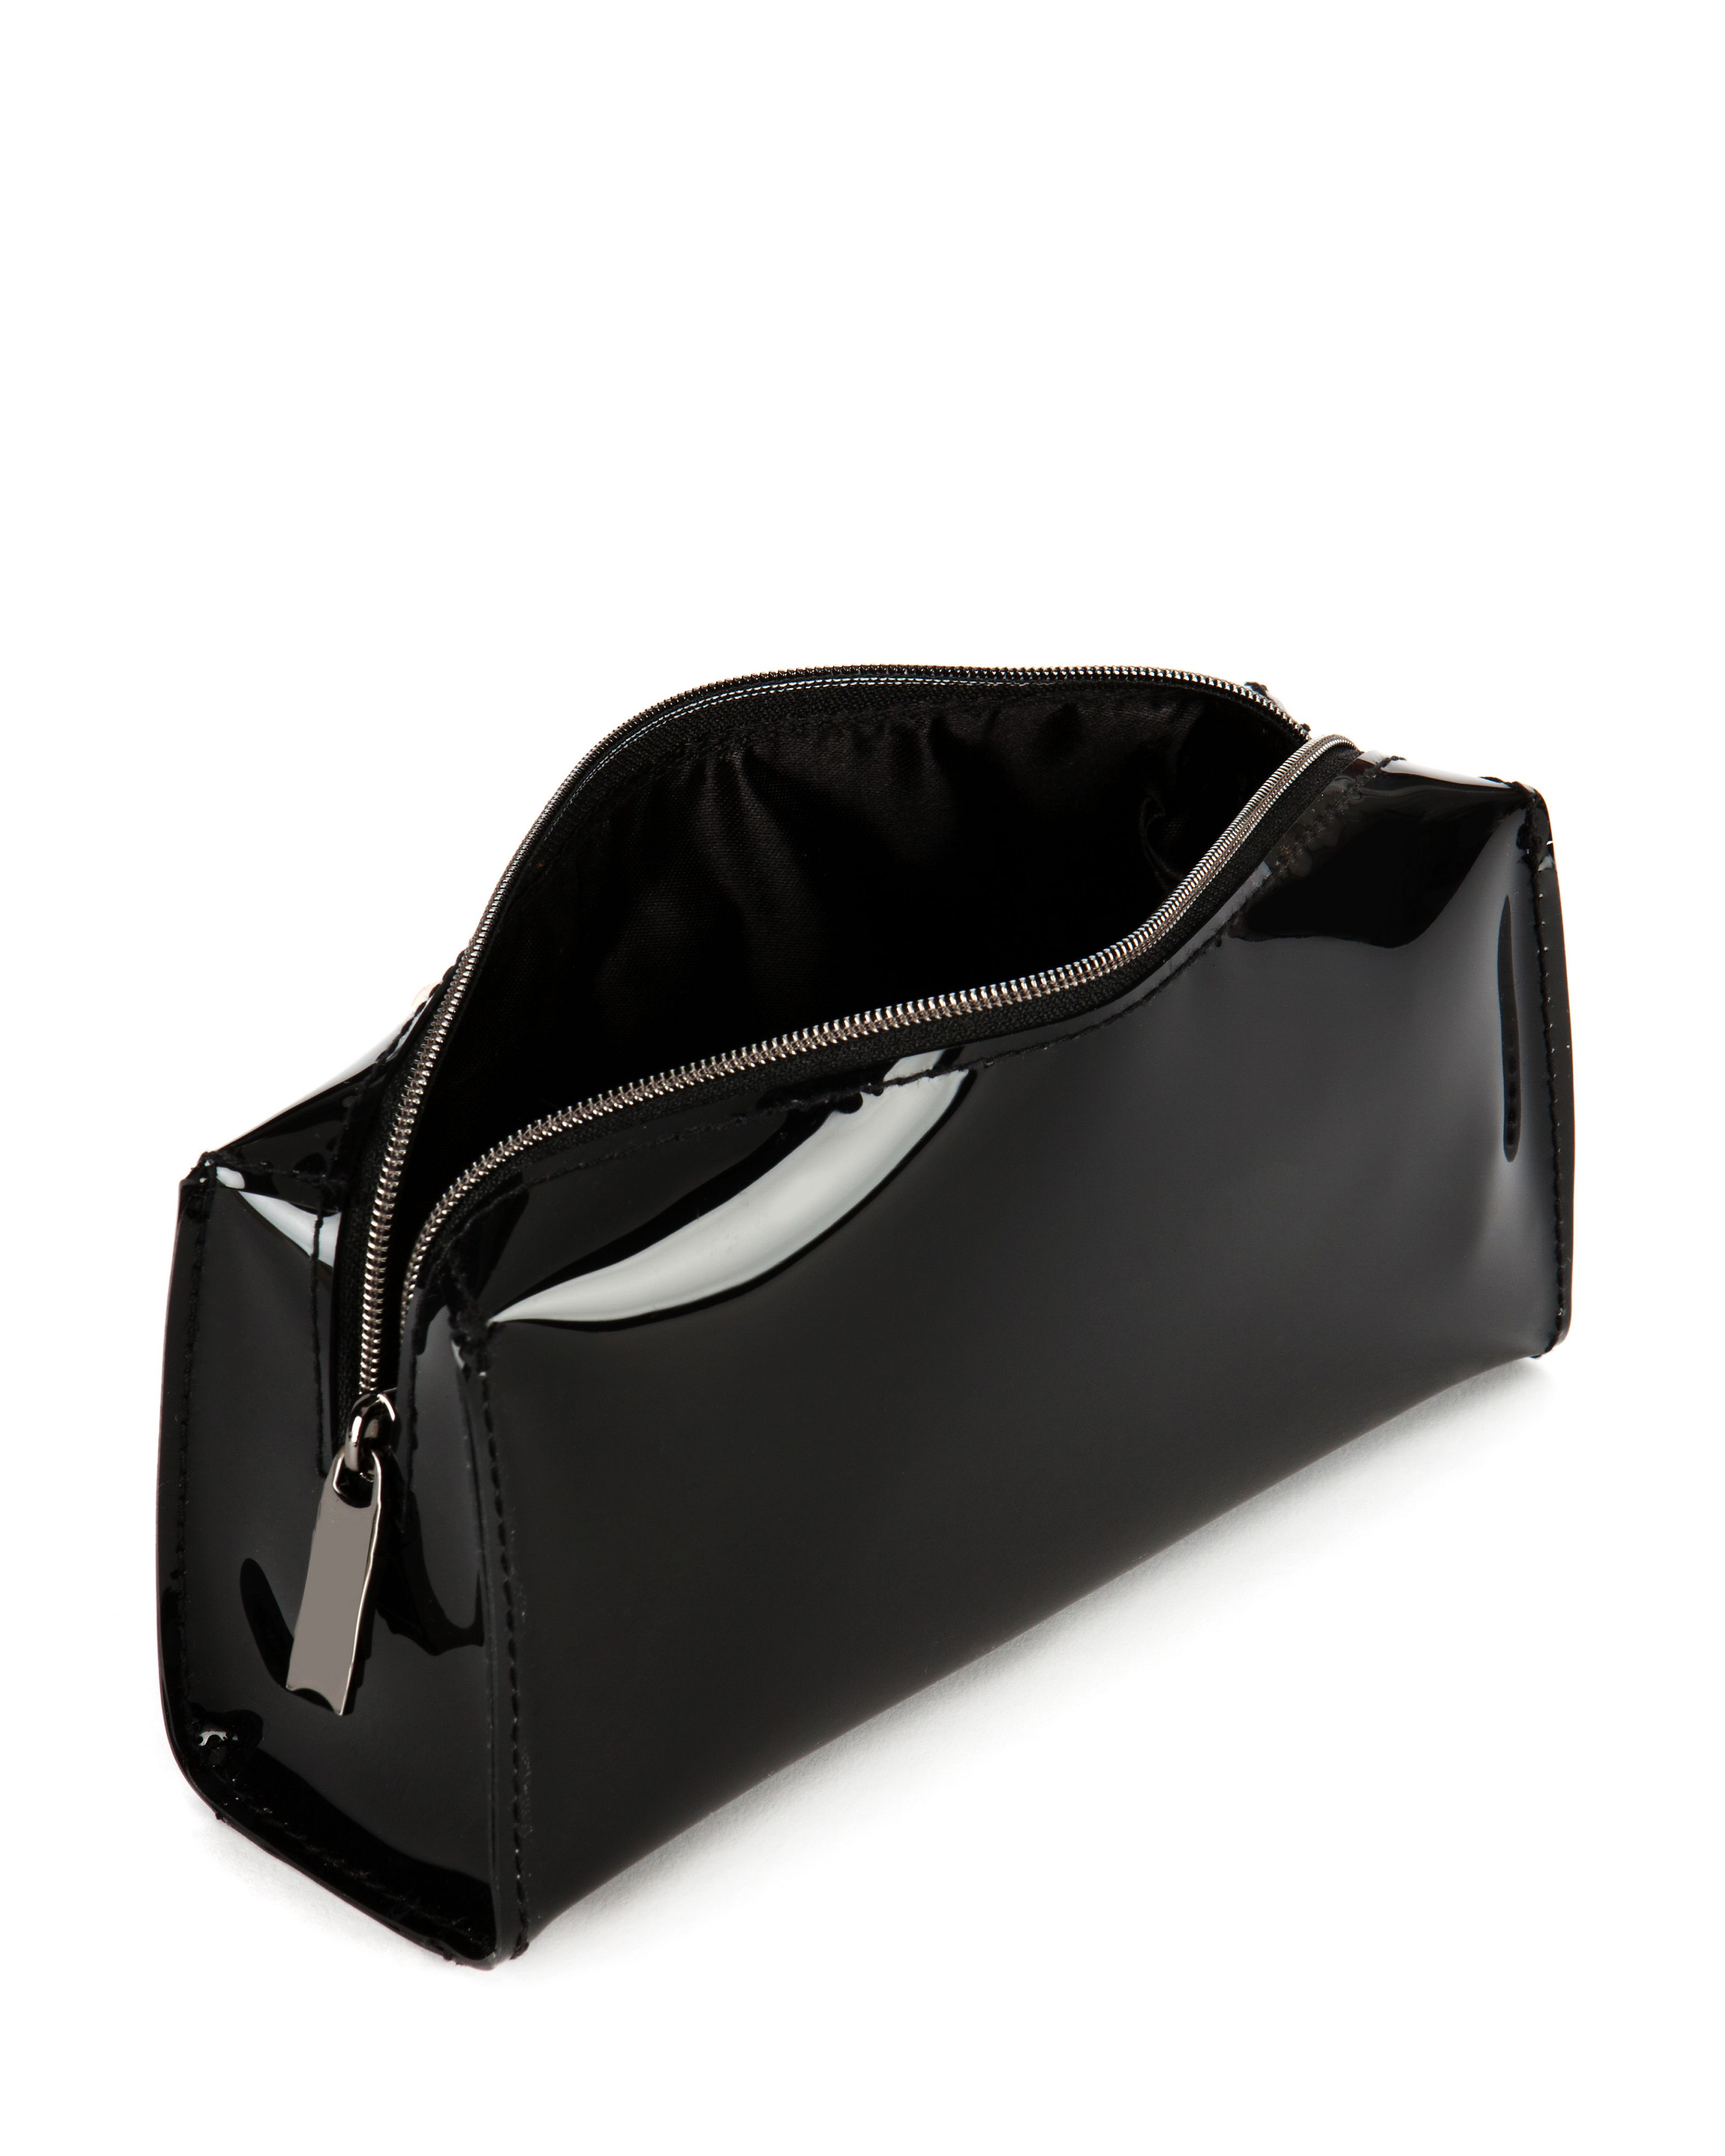 Jakko bow make up bag